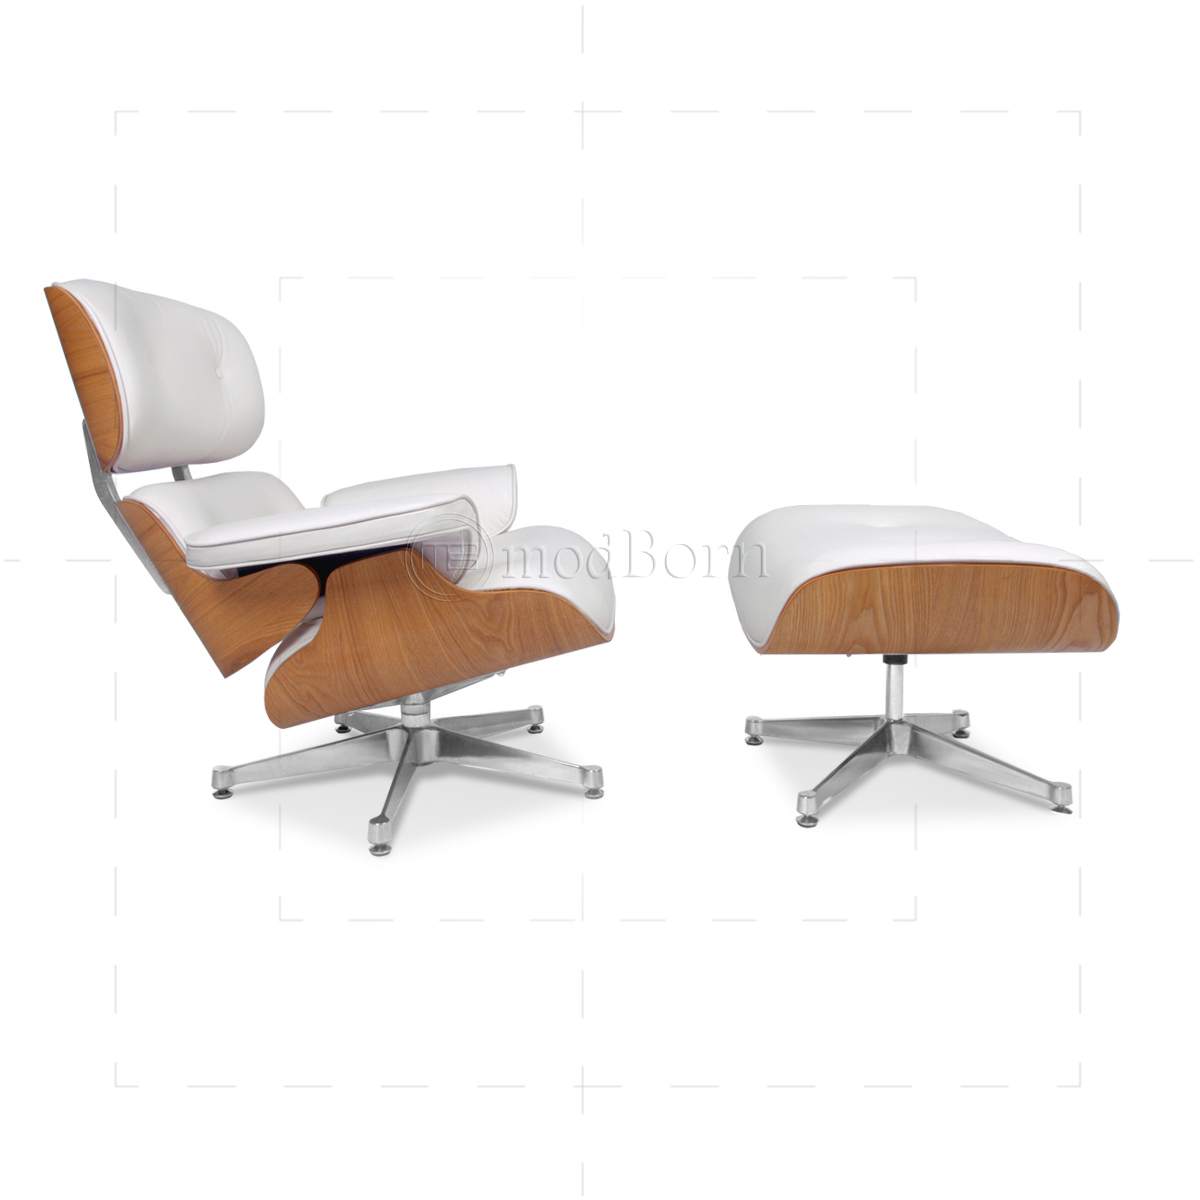 white eames lounge chair replica glass table and cream chairs style ottoman leather ash plywood